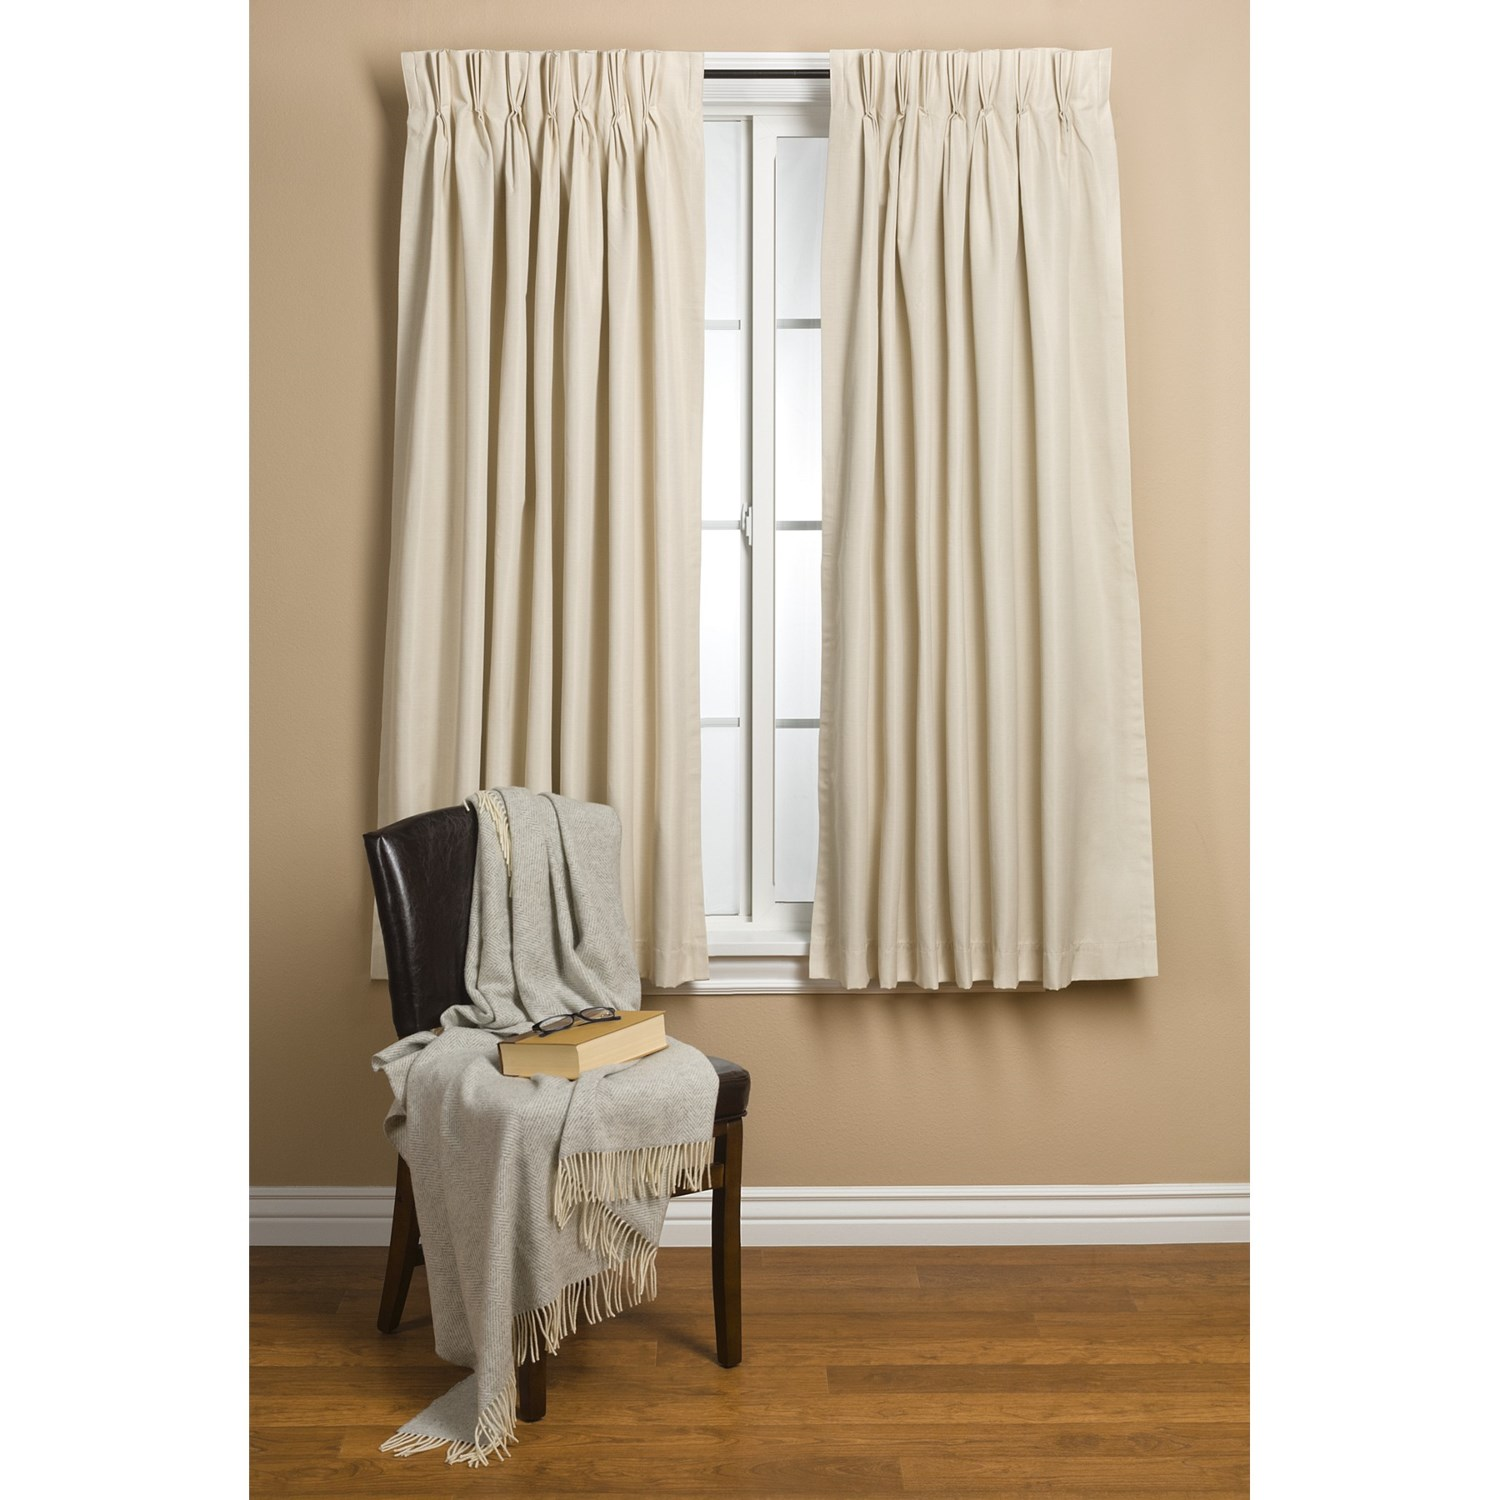 Commonwealth Home Fashions Hotel Chic Blackout Curtains 48x63 Pinch Pleat Save 50